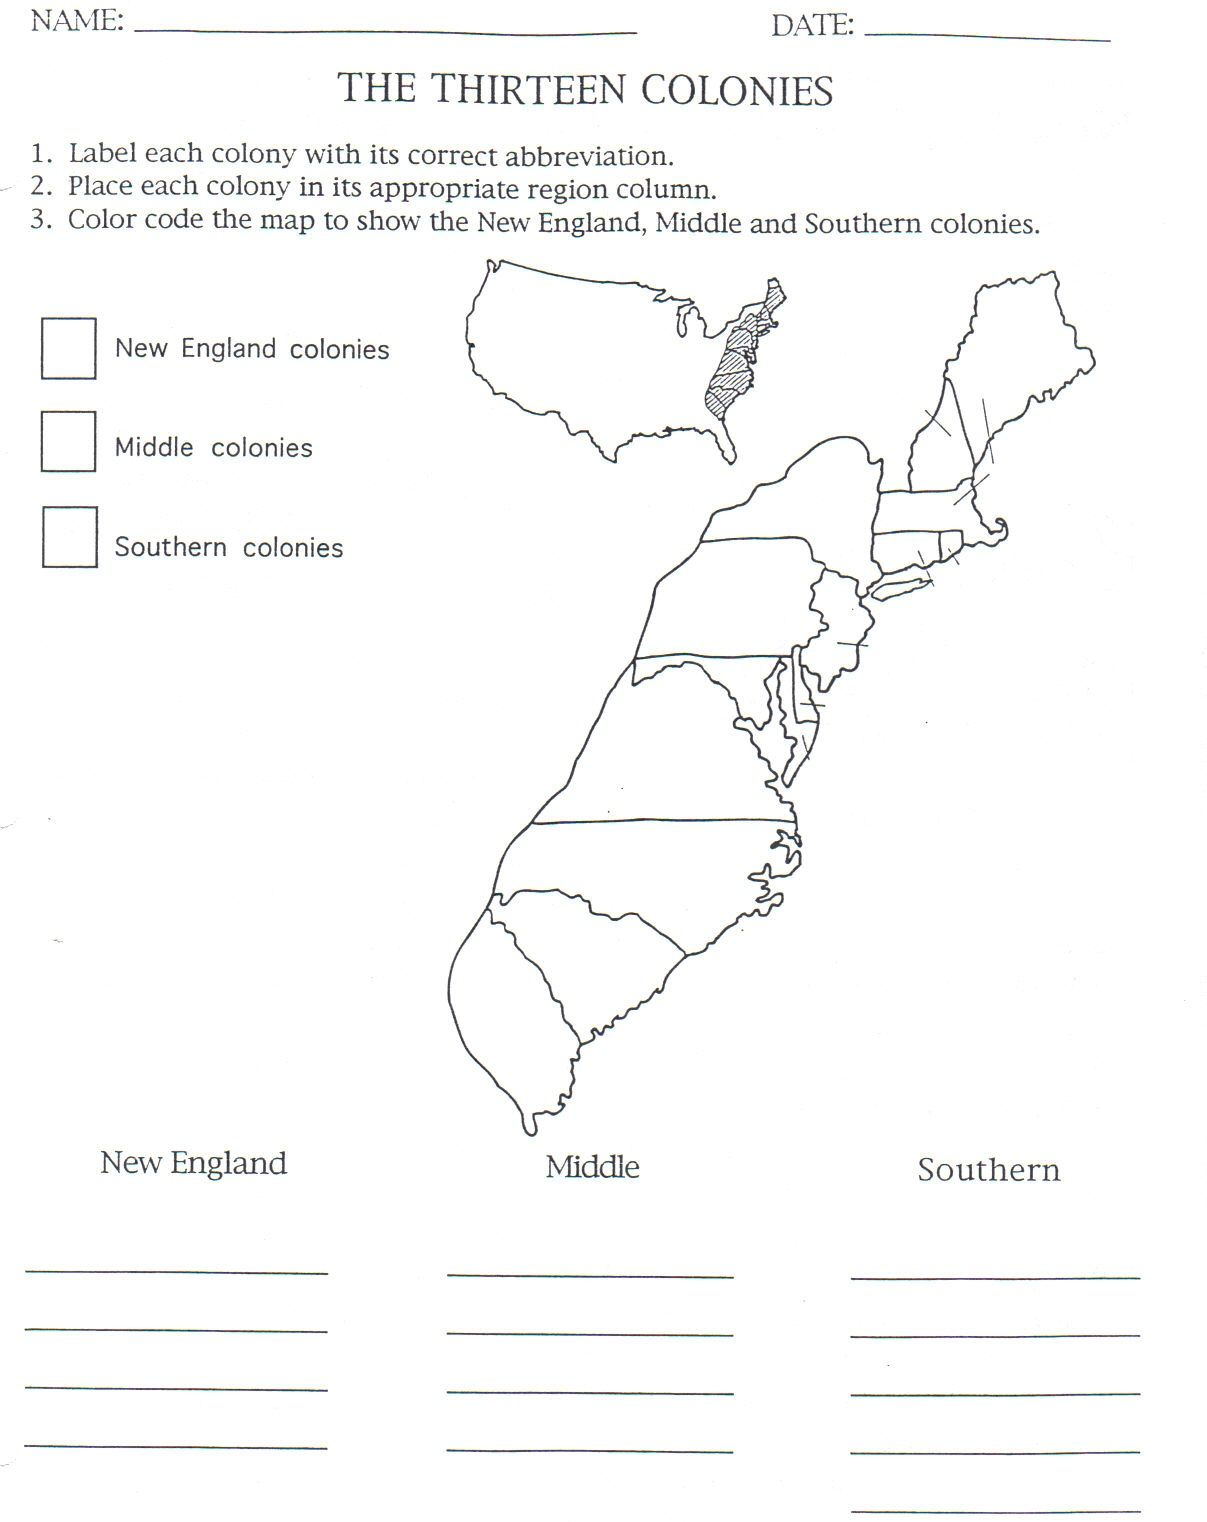 13 Colonies Map To Color And Label Although Notice That They Have Maine Listed As One Of Them